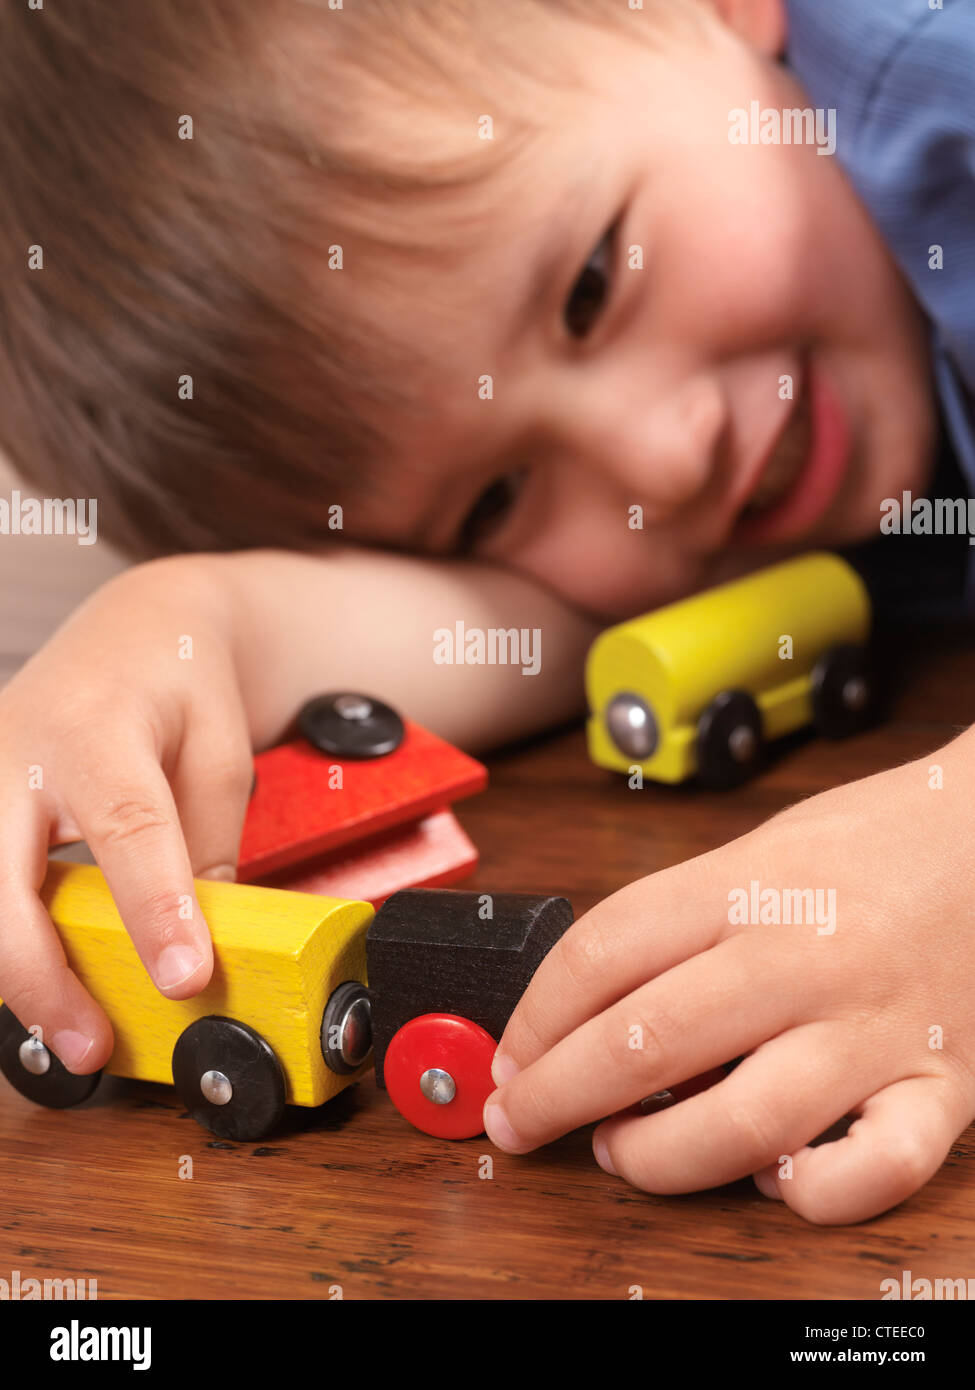 Happy two year old boy playing with a colorful toy train on hardwood floor - Stock Image